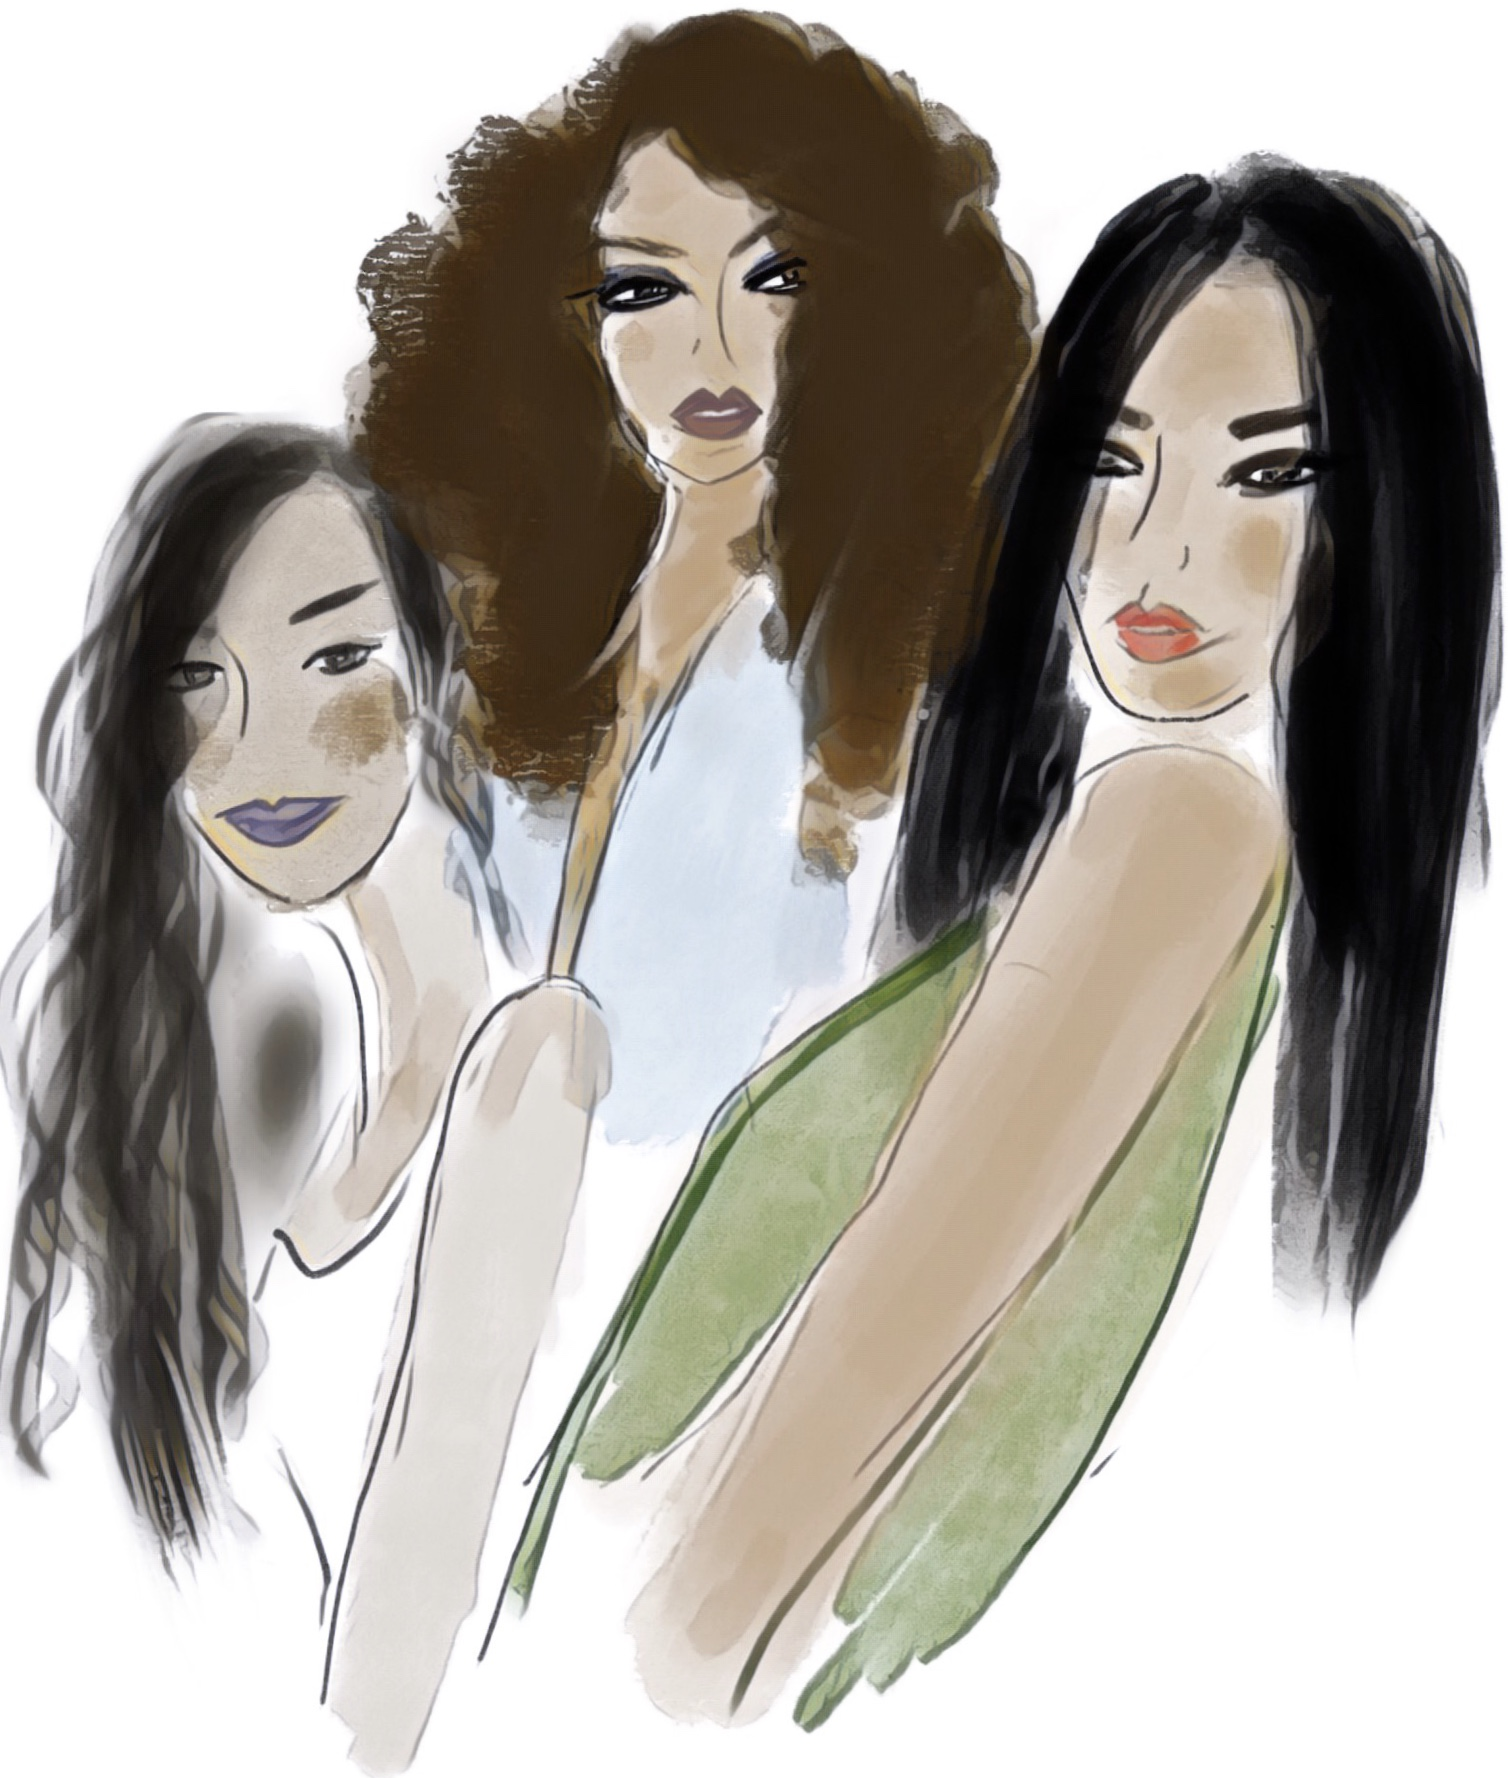 Exclusively Yours - In my debut novel, Exclusively Yours (March 2018), I adopted a mixed salad approach to diversity. My heroine, Leila, is Afro-Caribbean; Brie, her protégé is African- American; and Sofia, her best friend, is Latina. Leila's love interest, Nicolas, is the child of Canadian snowbirds. I tossed it all in.